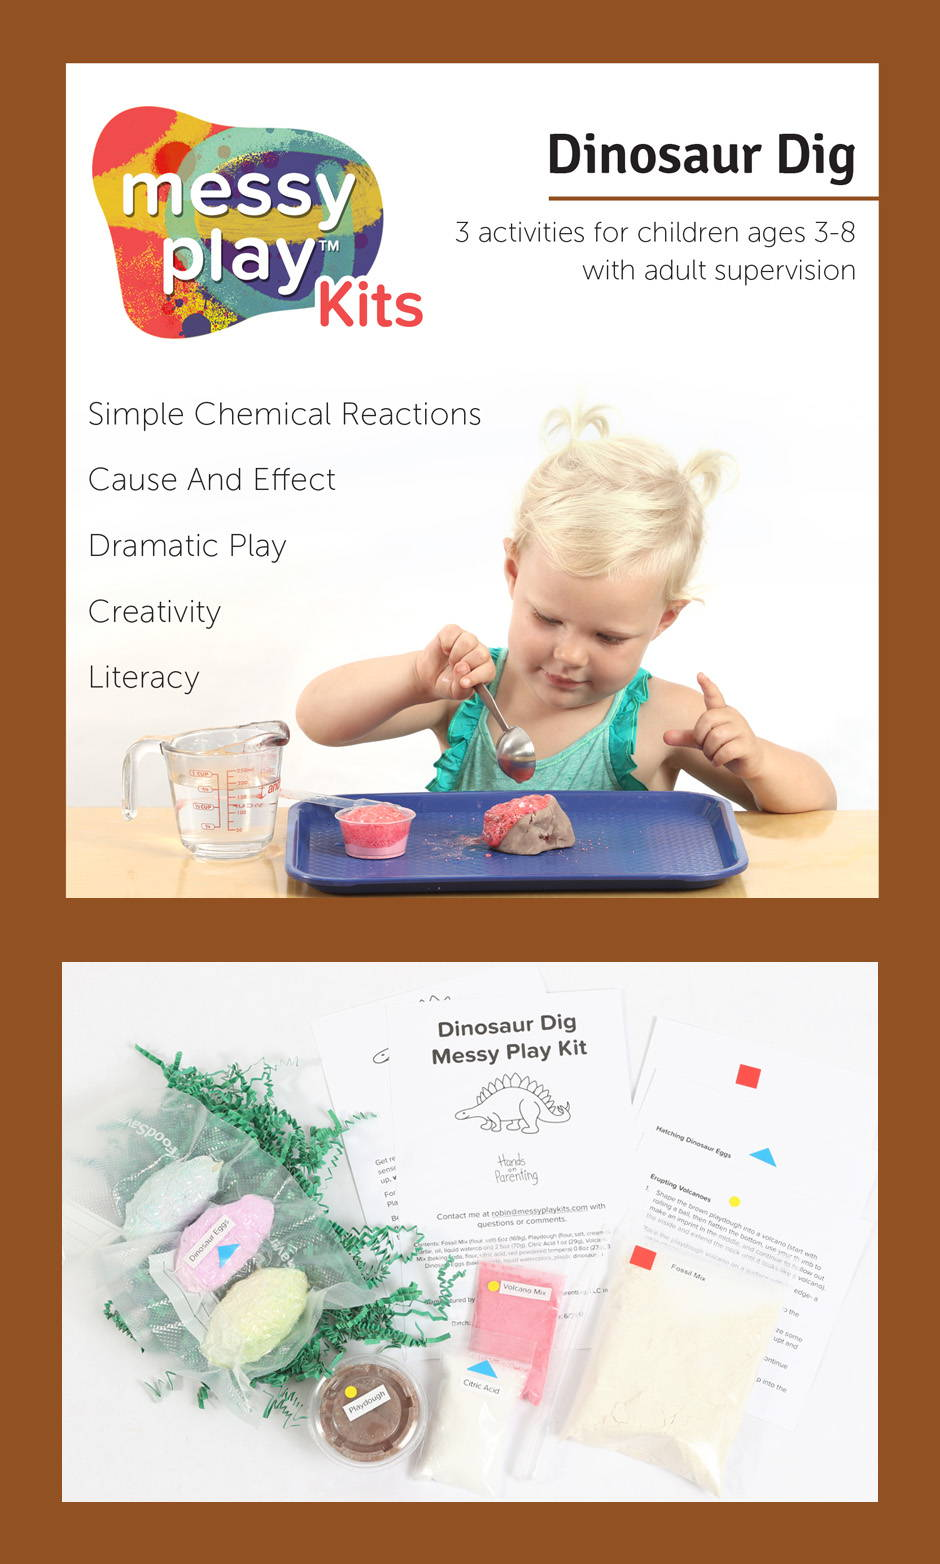 Dinosaur Dig Messy Play Kit contains 3 activities that teach simple chemical reactions, cause and effect, dramatic play, creativity, and literacy,